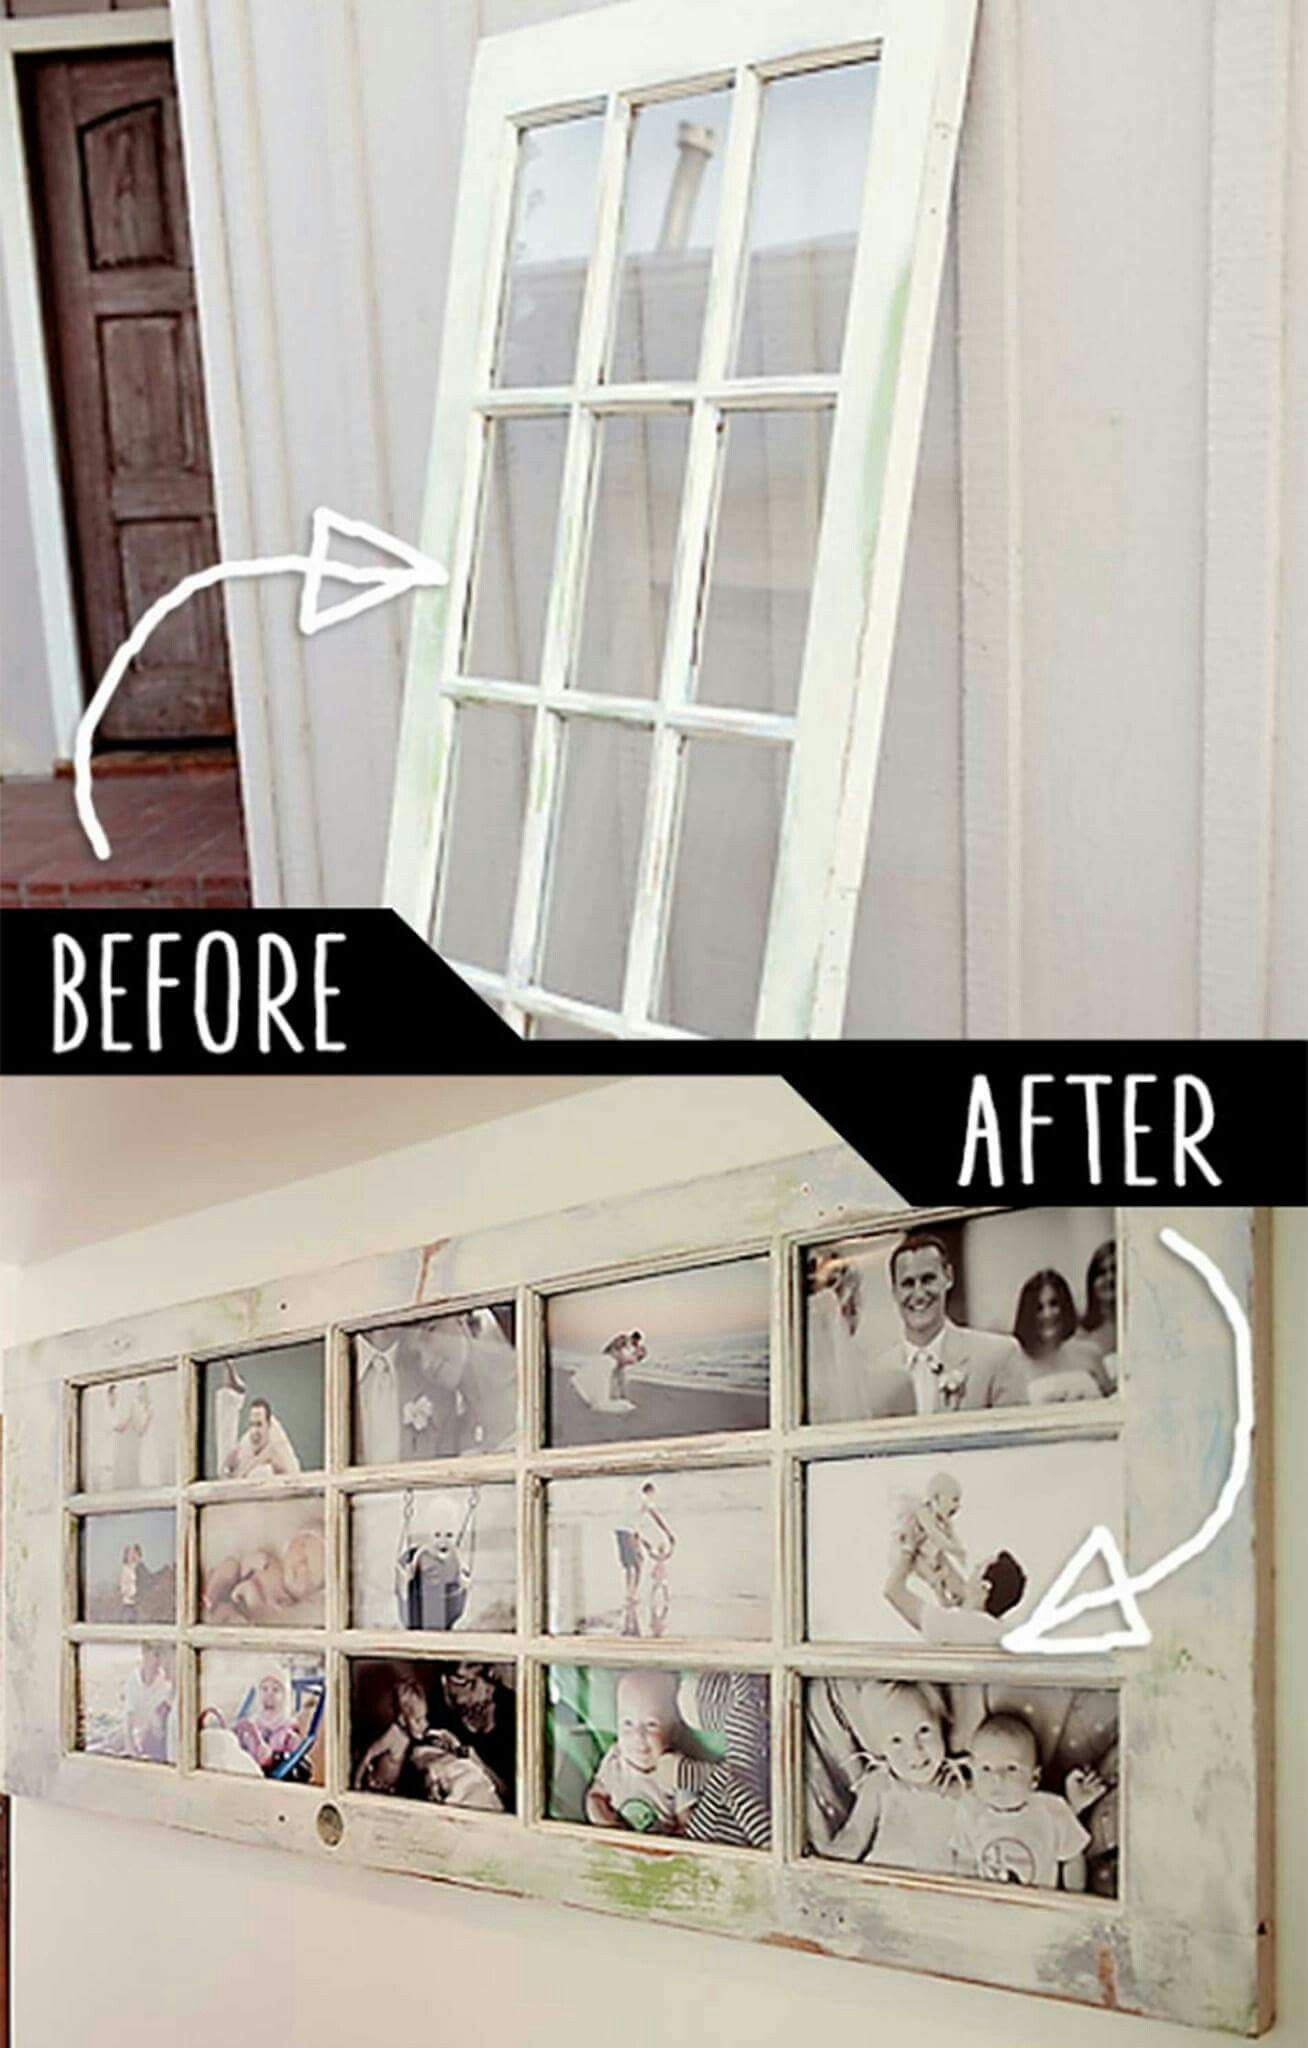 Such a lovely idea turning old door into a family life story